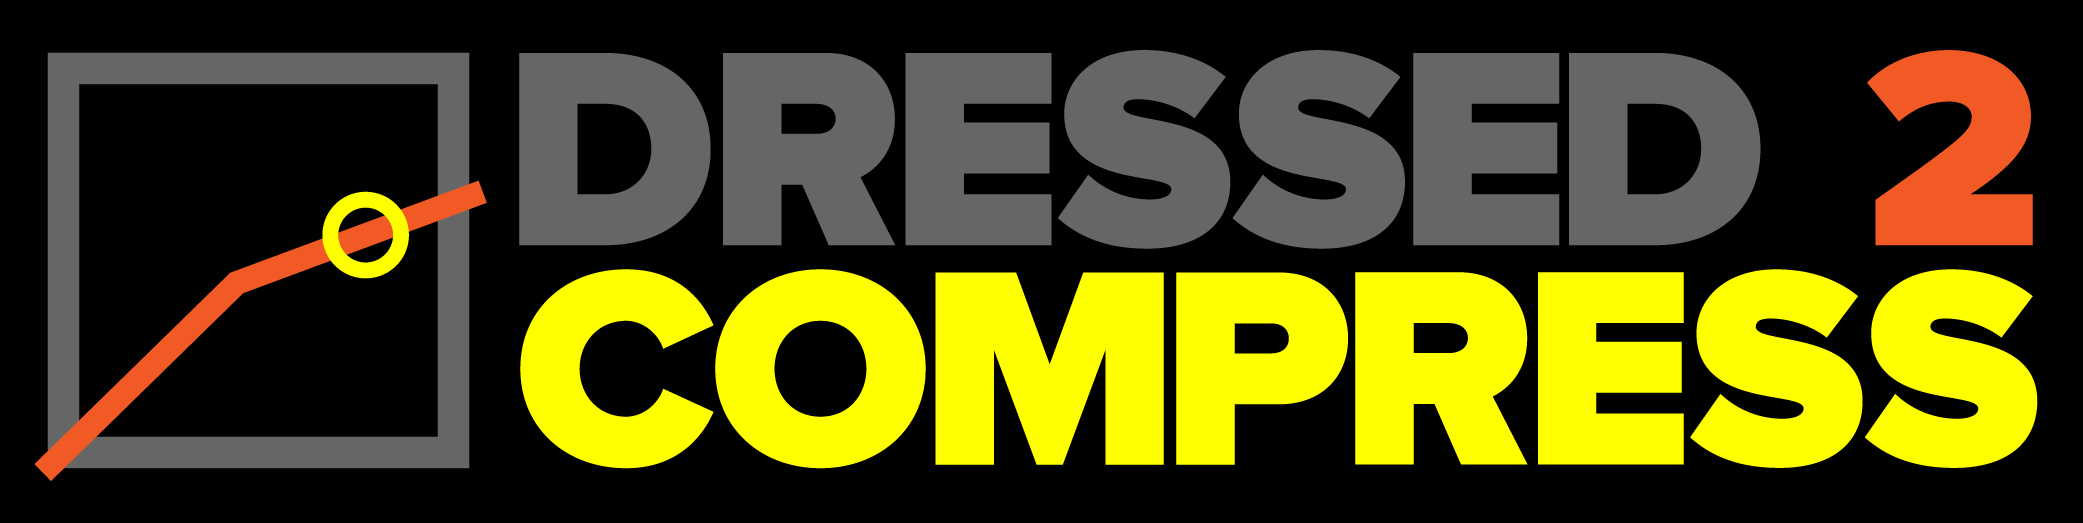 compress-01.png